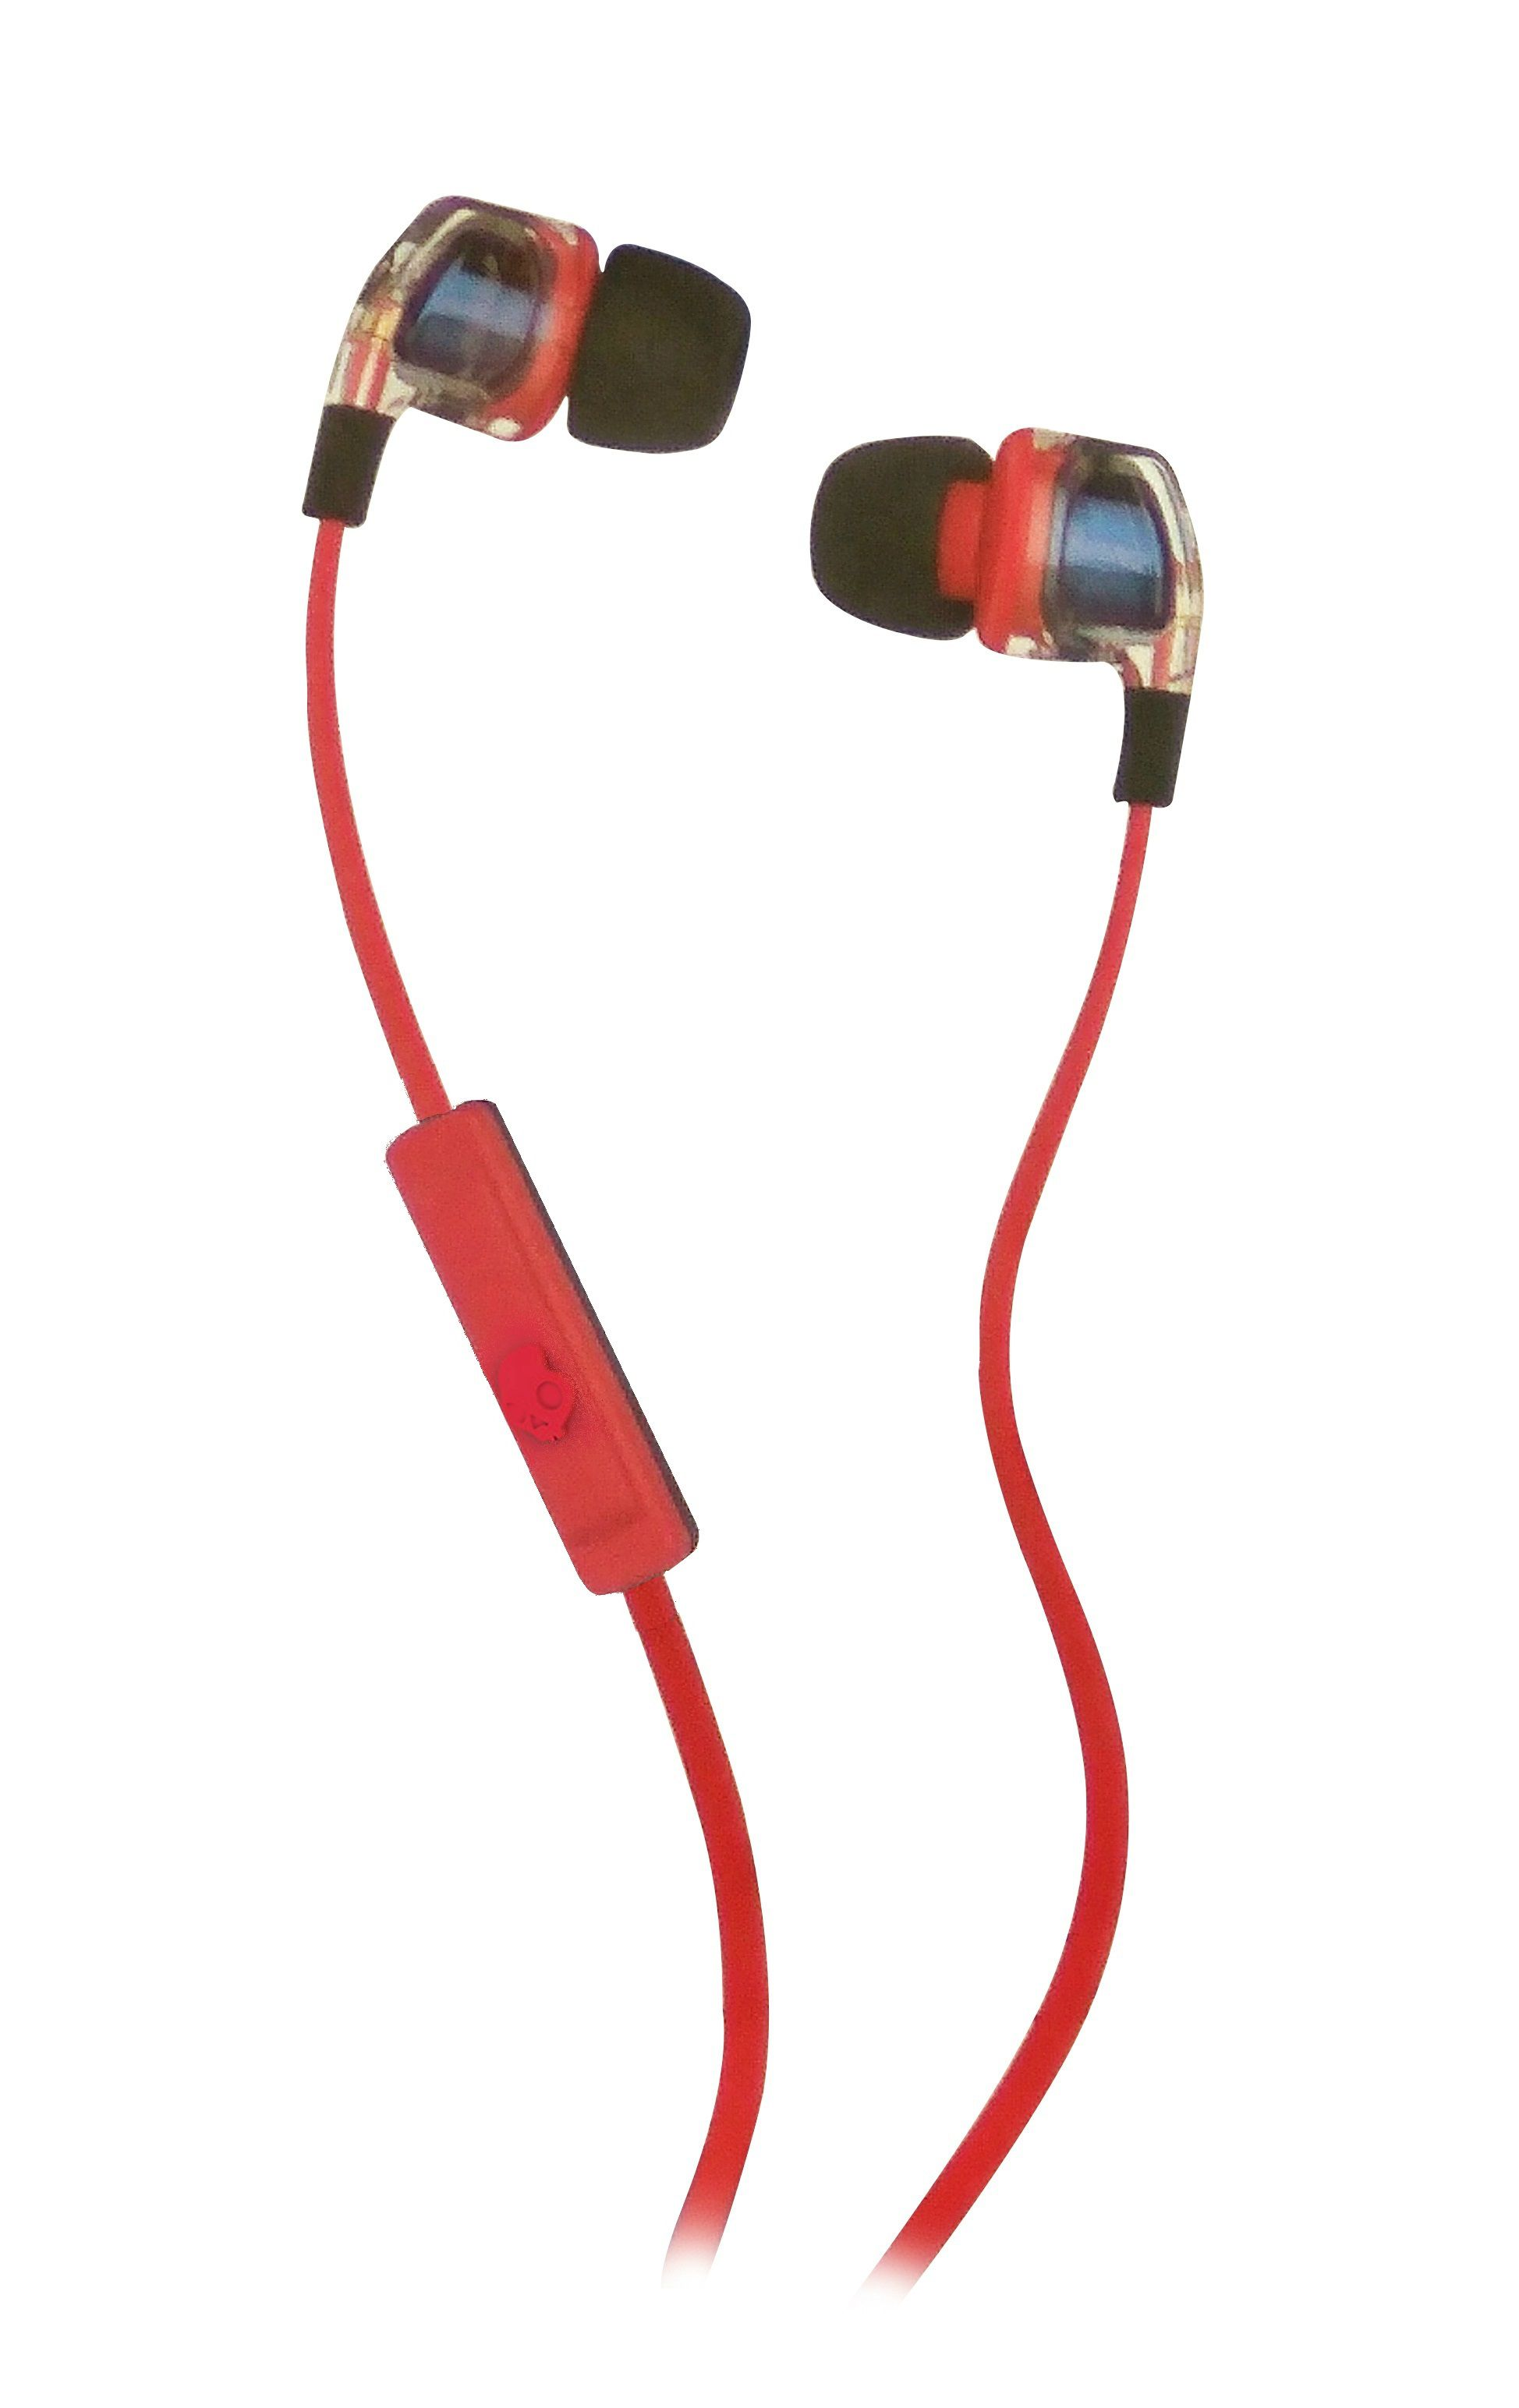 SkullCandy Coupons Skullcandy Shopping and Savings Tips. Buy on sale. Shop the On Sale section of the Skullcandy website, where you'll discover lots of popular products on .